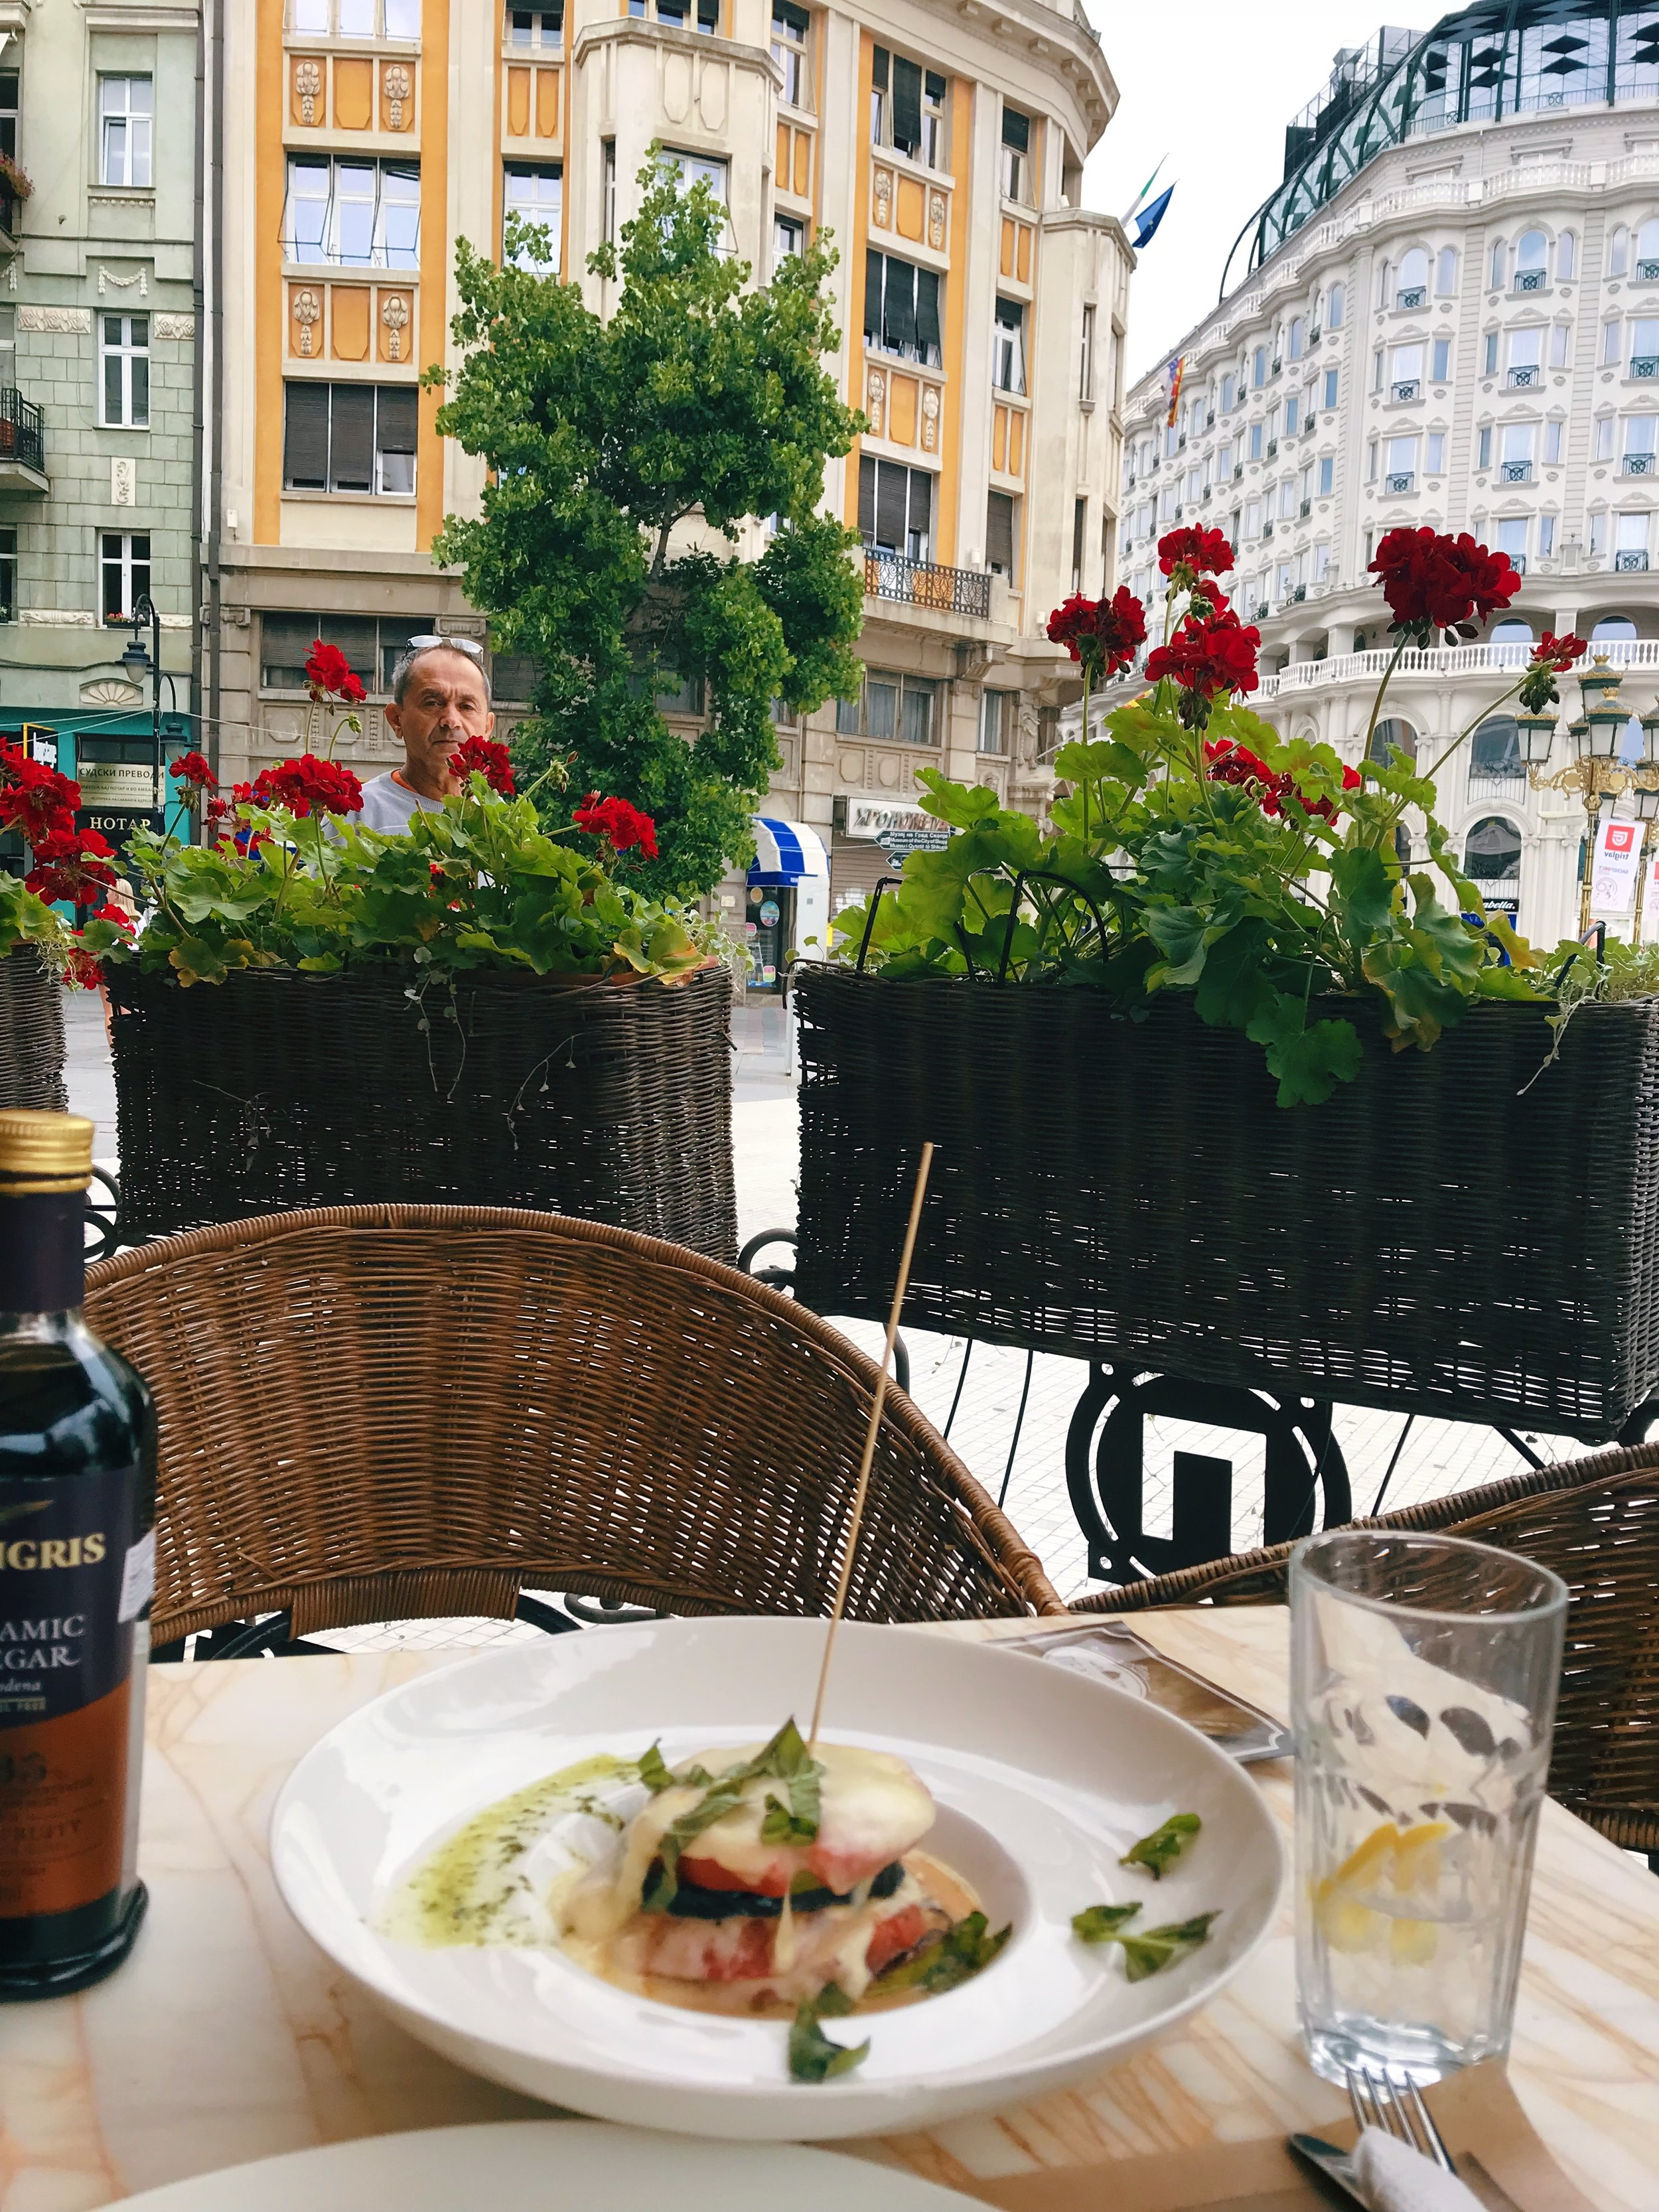 Pelister  in the main square downtown has a massive outdoor seating area where you can enjoy a coffee and take in Alexander in all his glory.